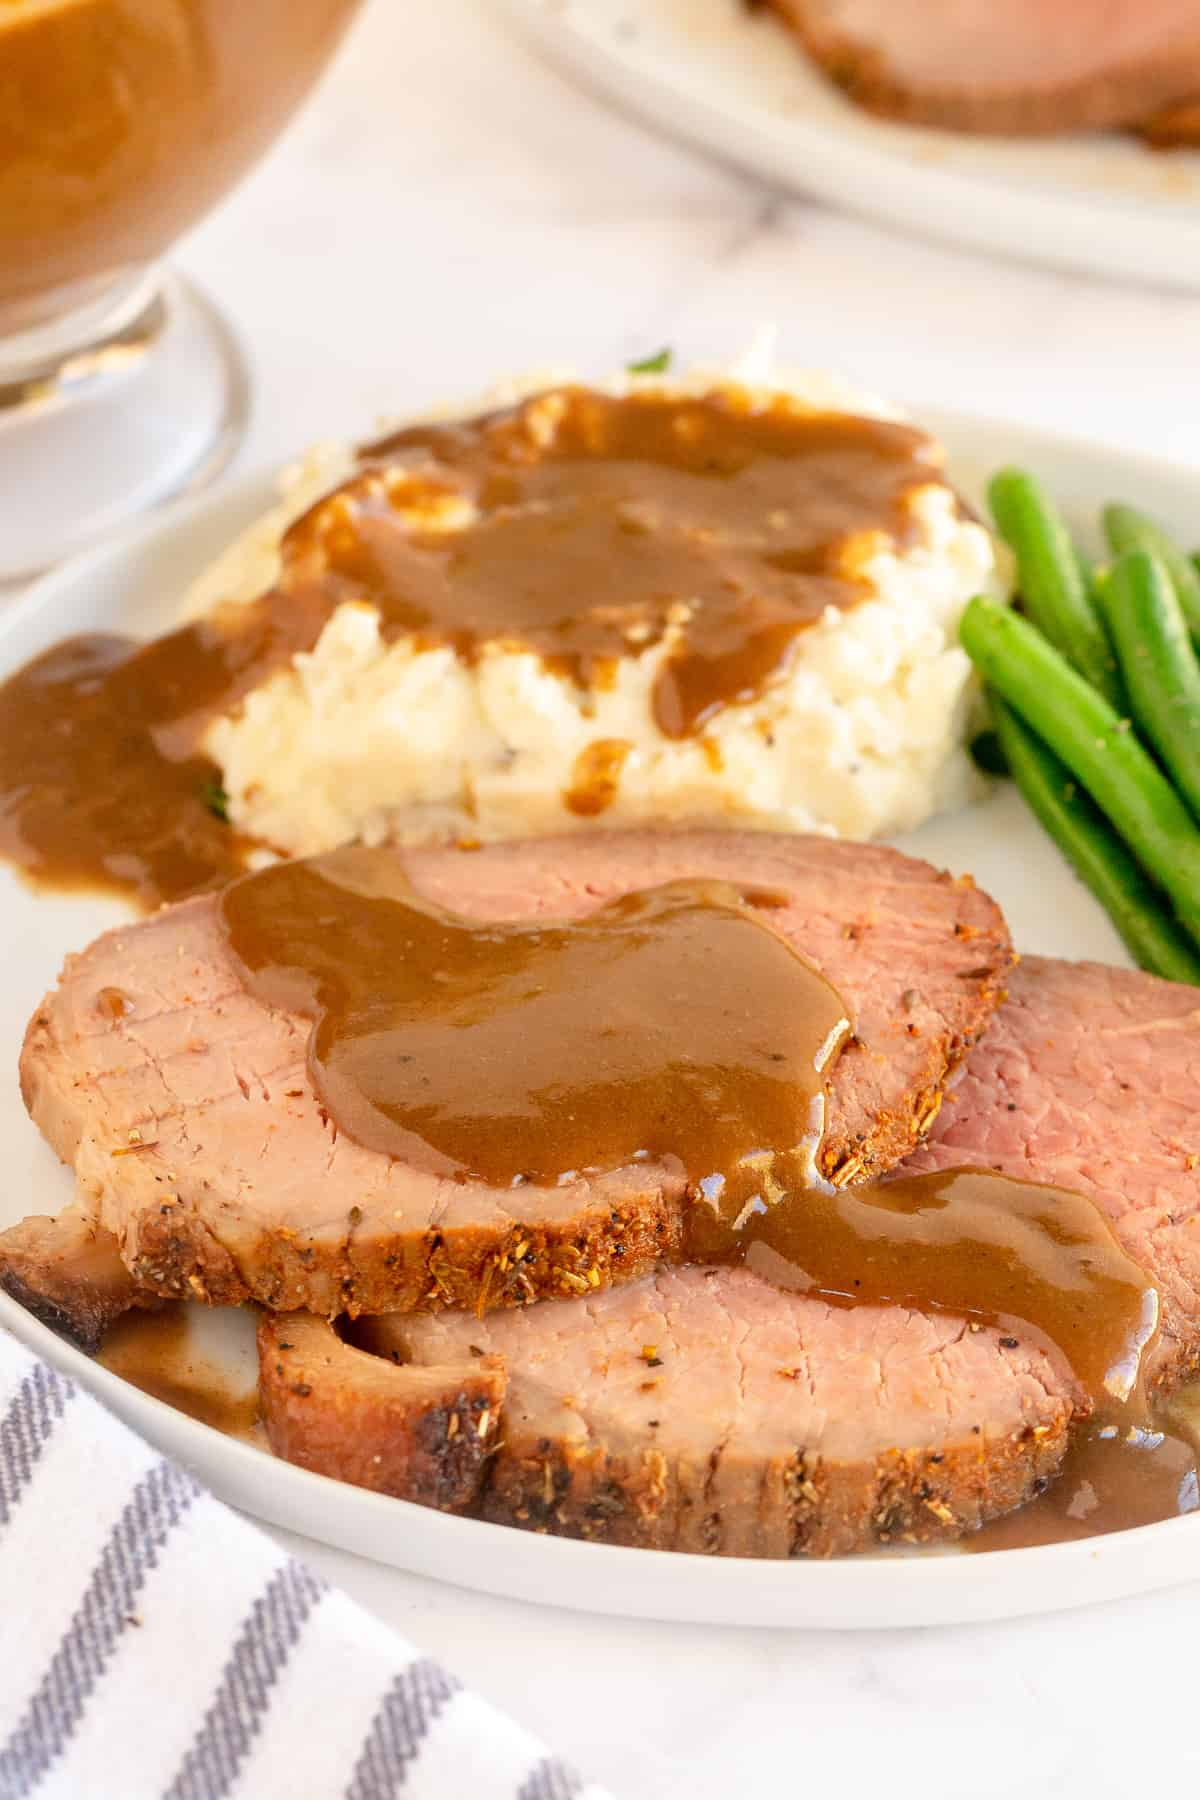 Slices of roast beef with gravy and mashed potatoes on a plate.